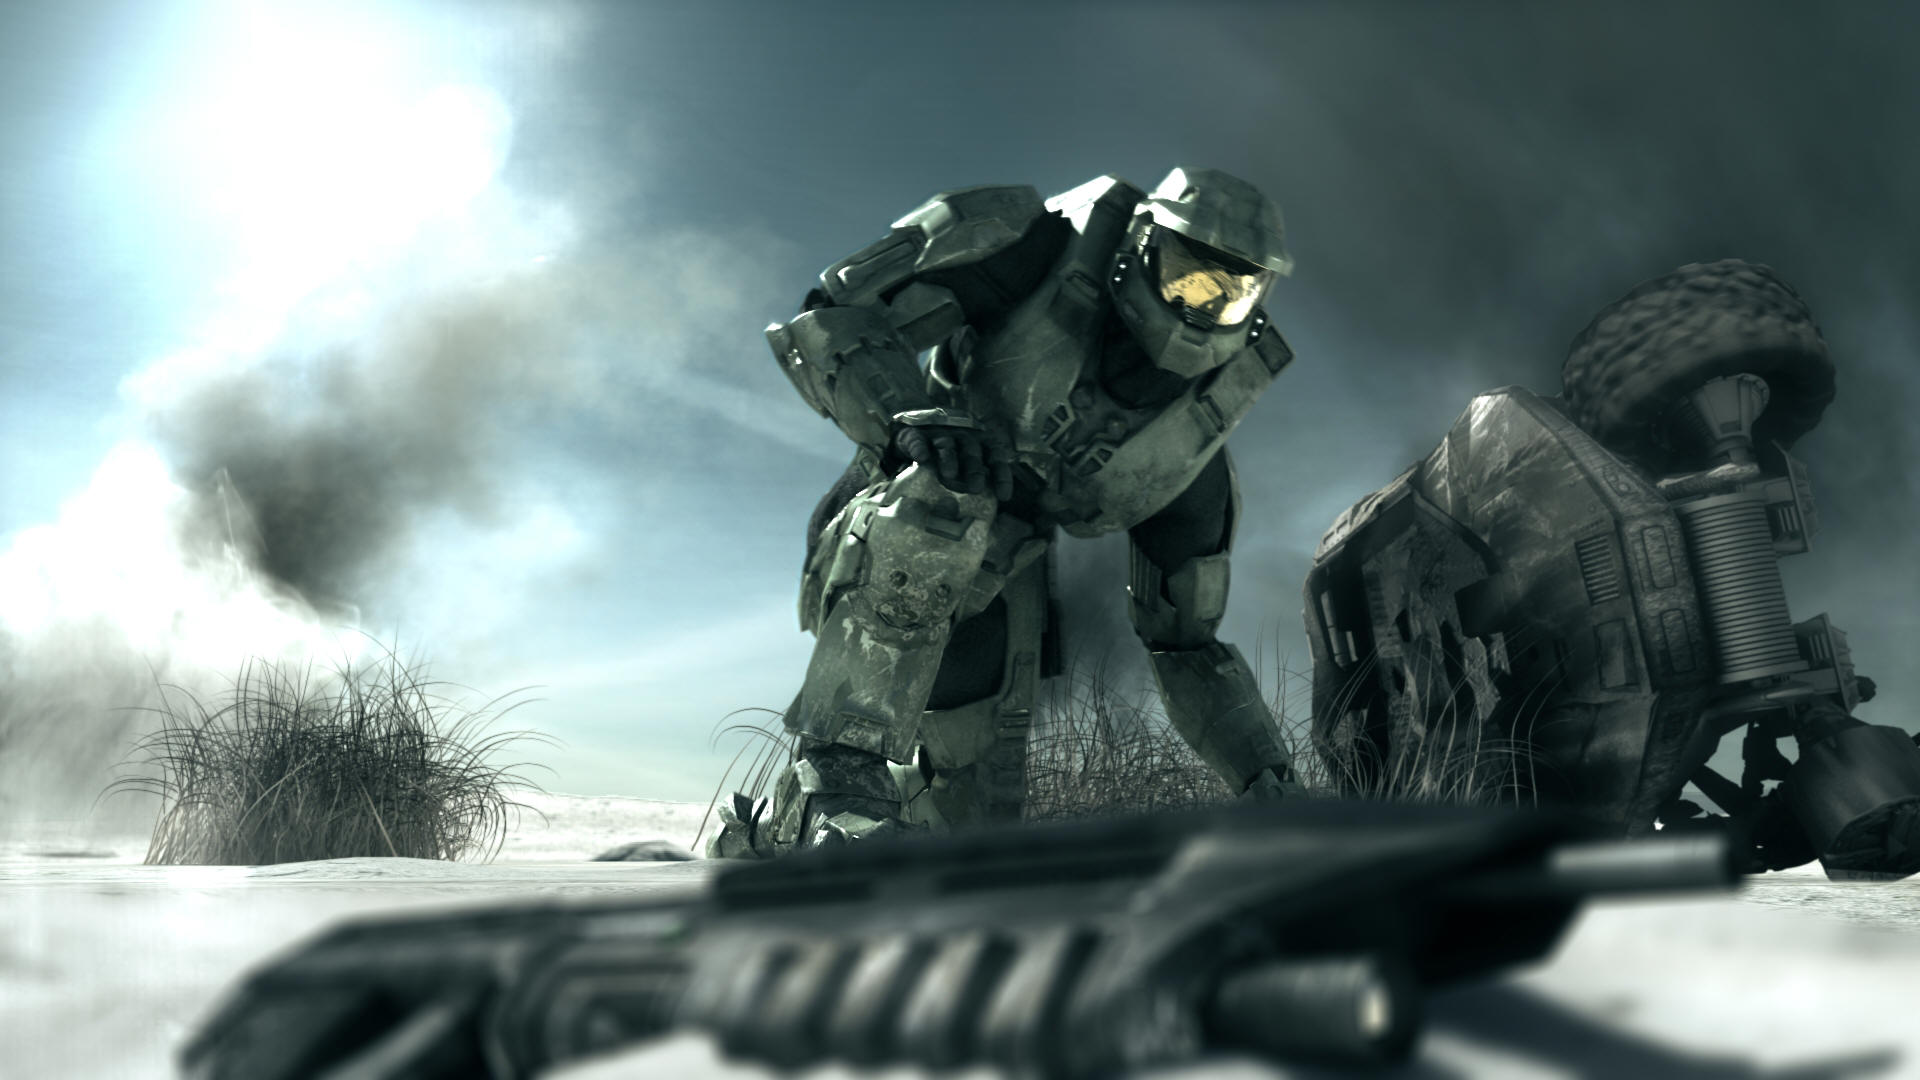 Halo 5 Master Chief Wallpaper PC 14156 - Amazing Wallpaperz